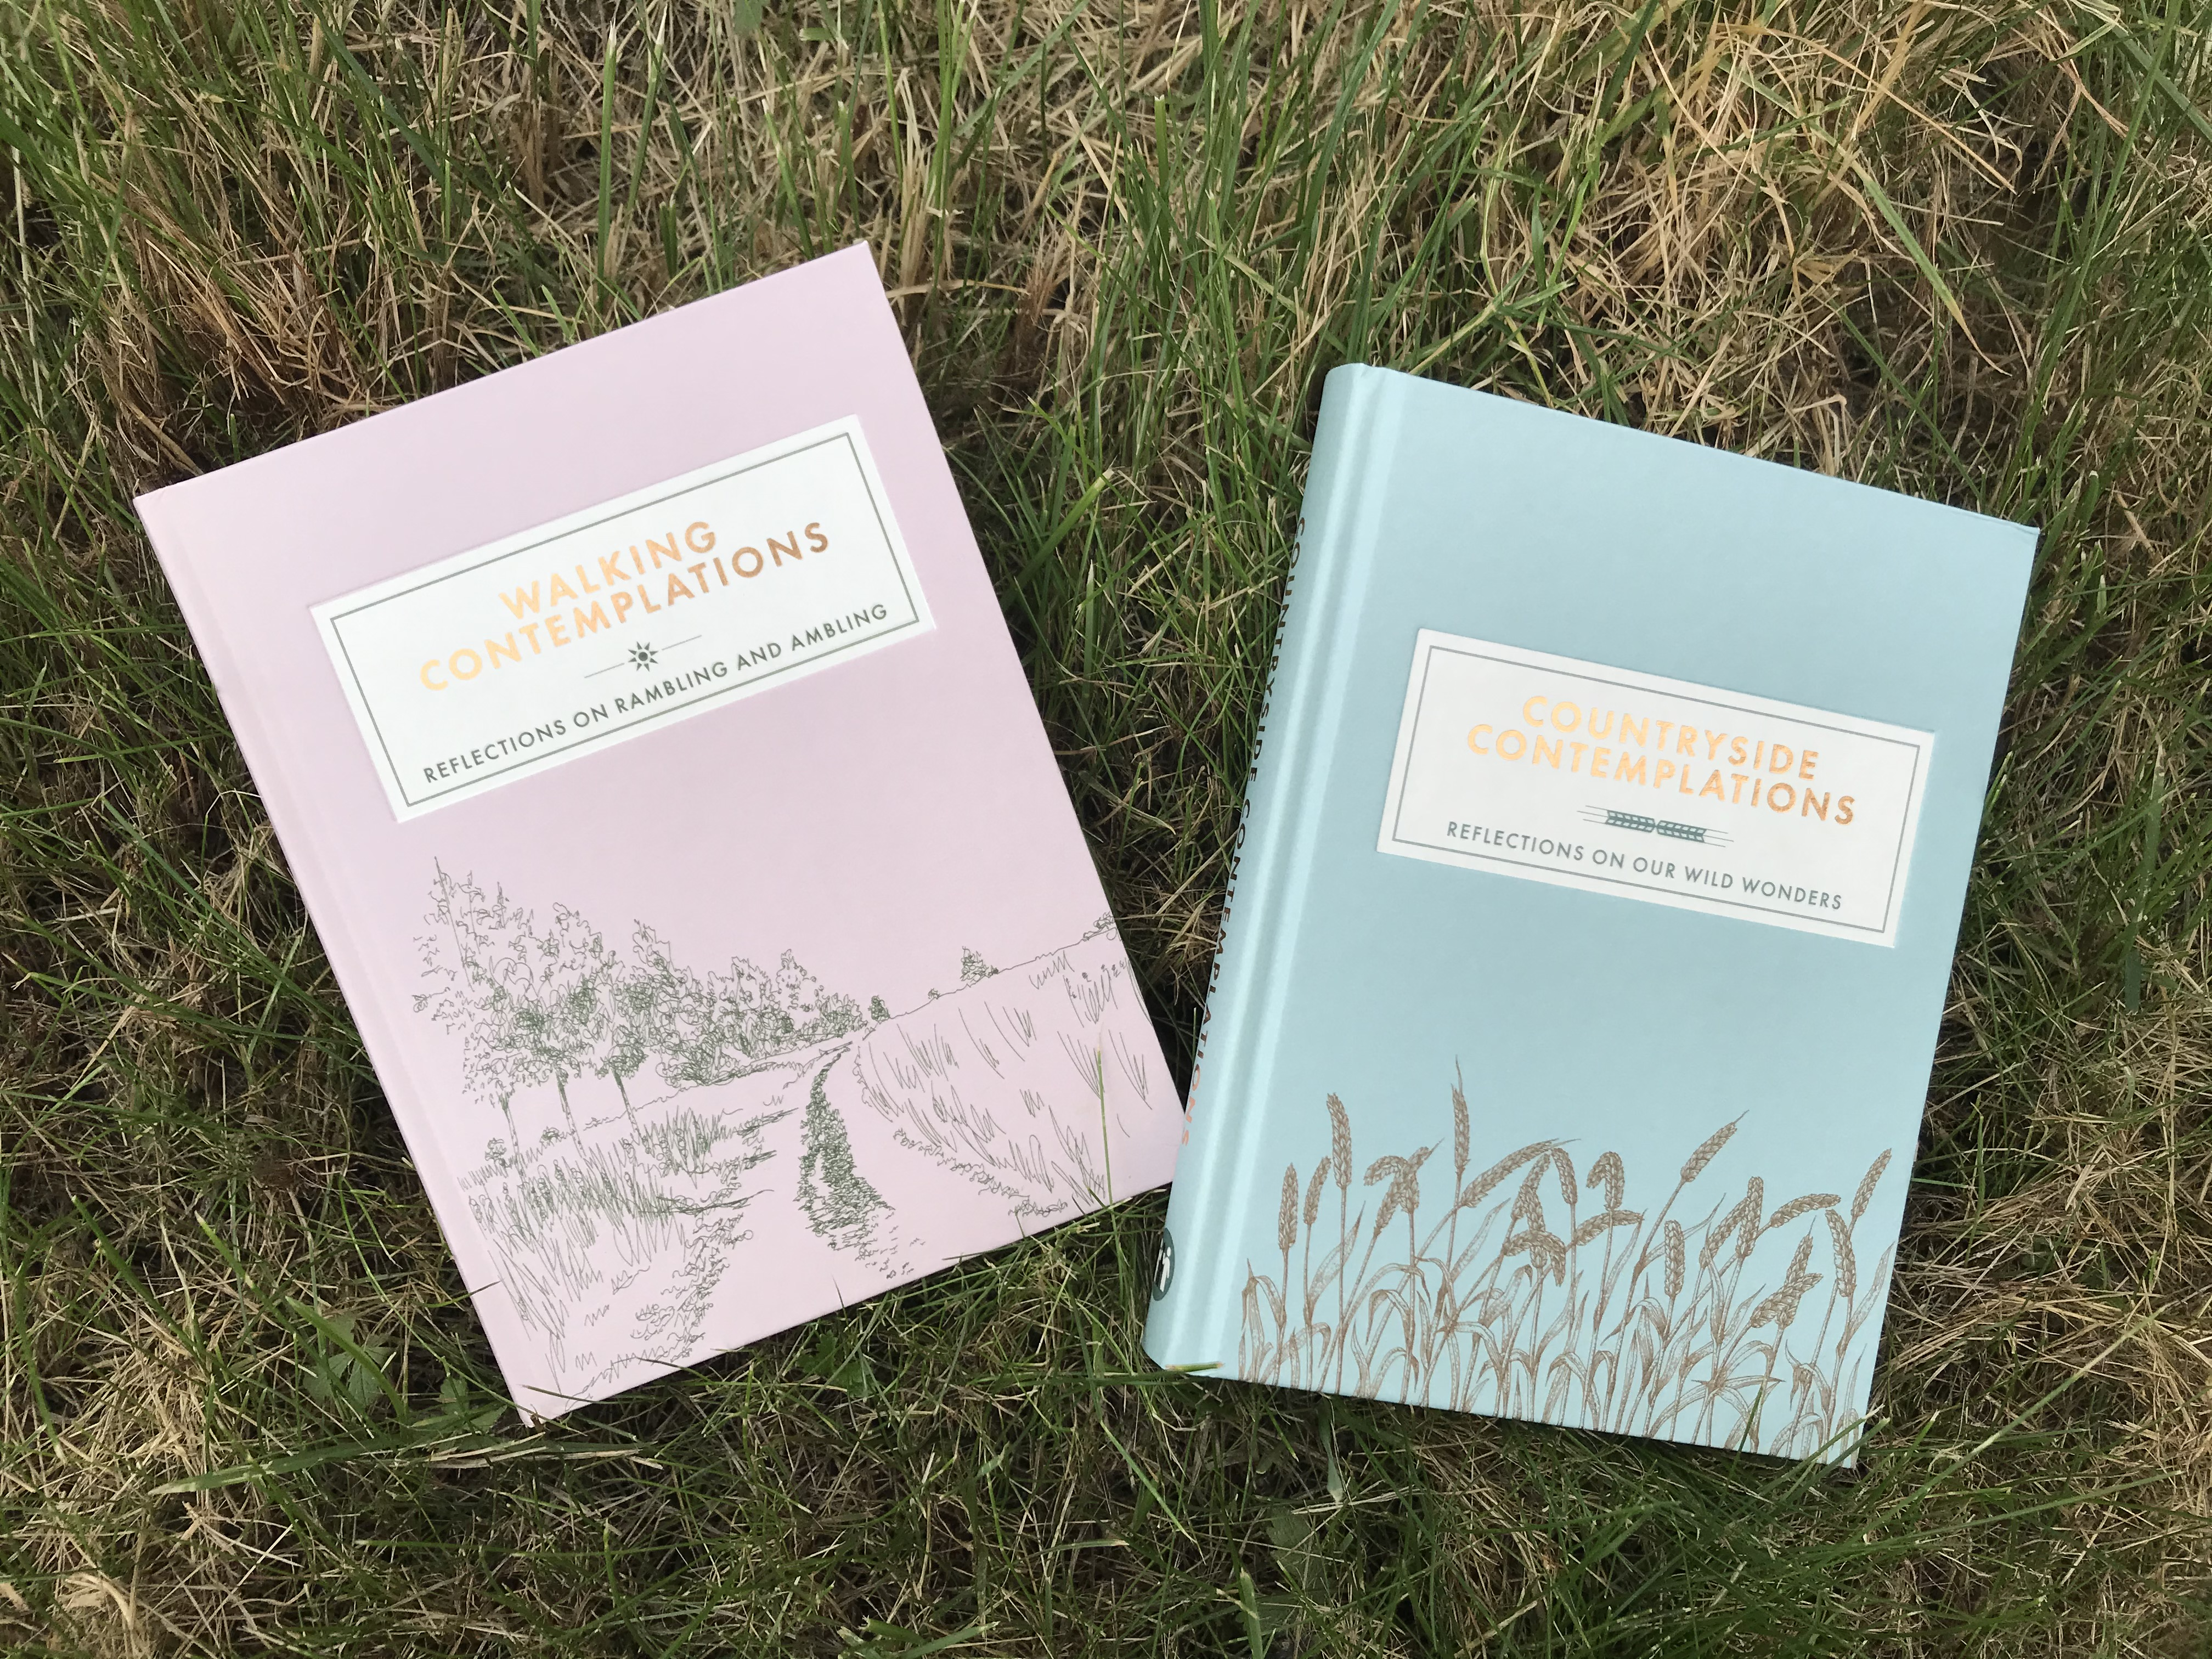 Countryside Contemplations Trigger Publishing